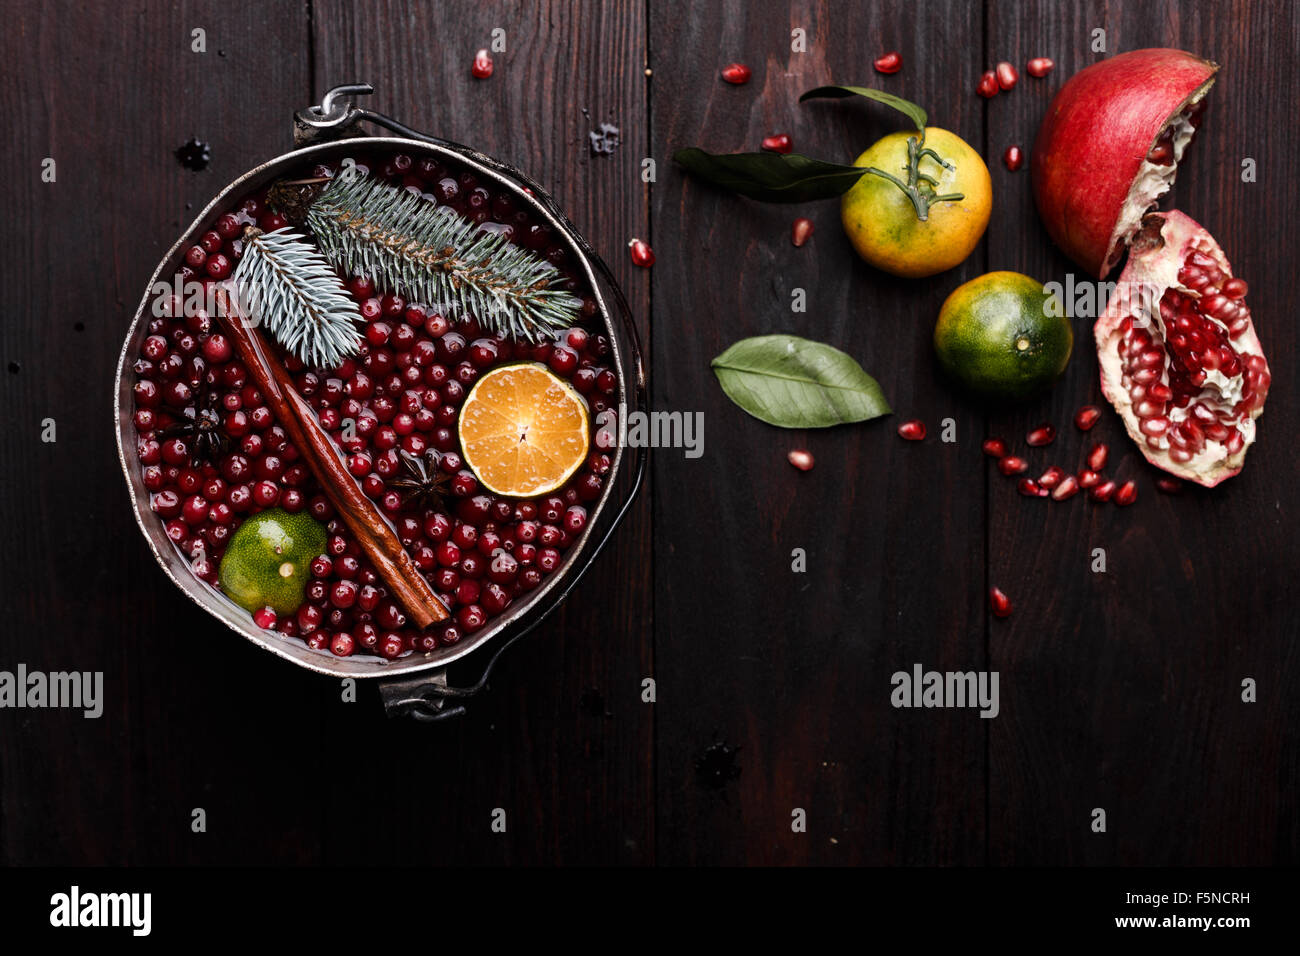 Cranberry mandarin pomegranate punch or mulled wine in a rustic aged pot - Stock Image